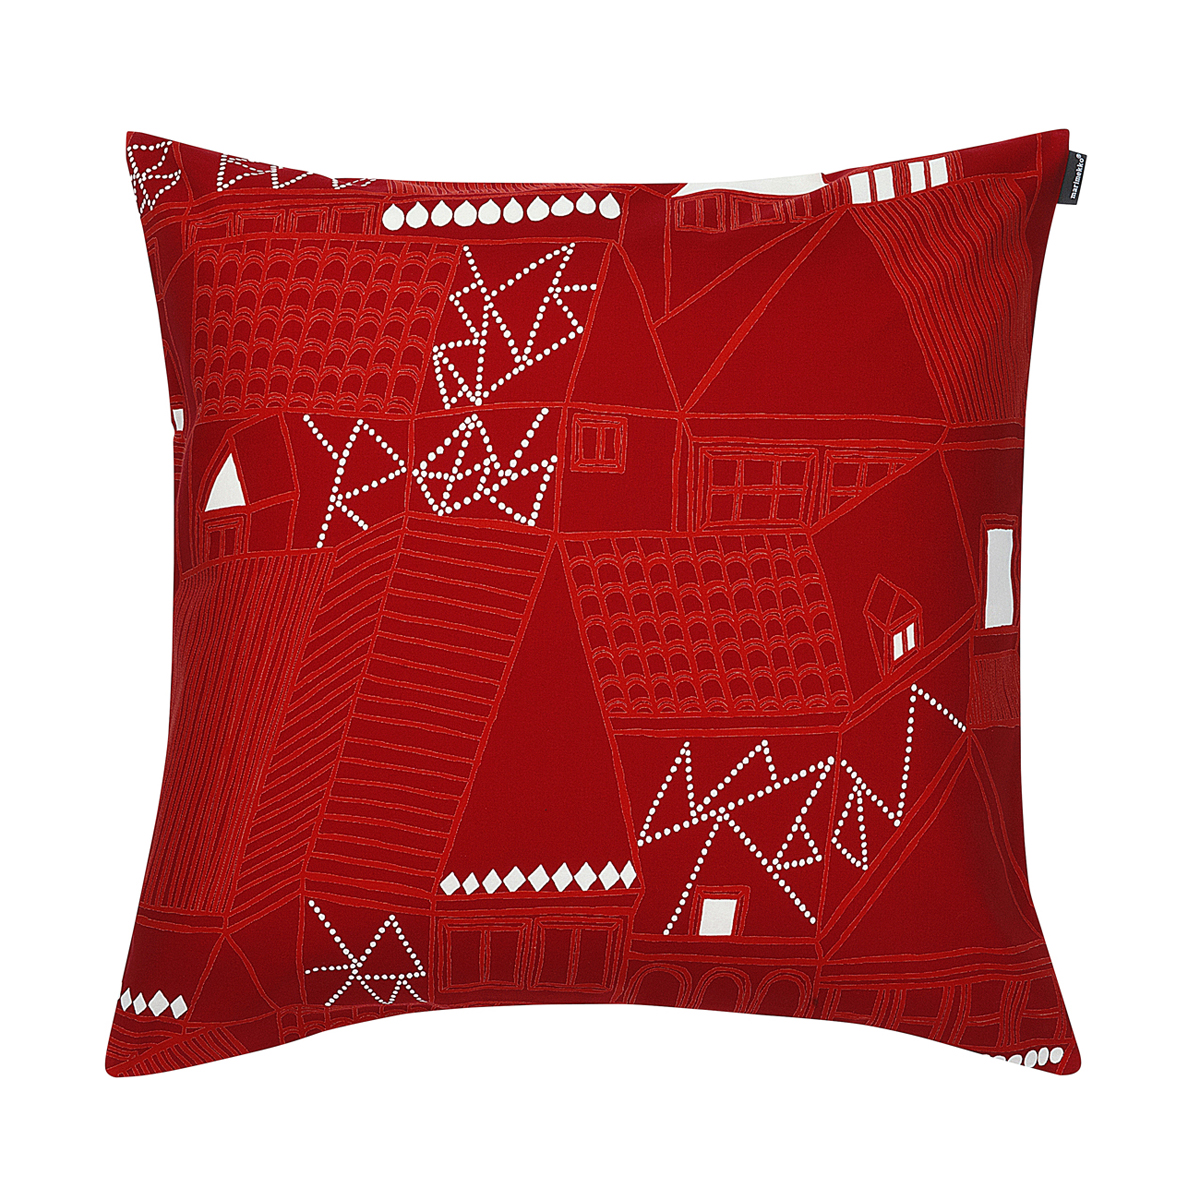 Marimekko Kujilla Red Throw Pillow - Marimekko Bed & Bath Sale